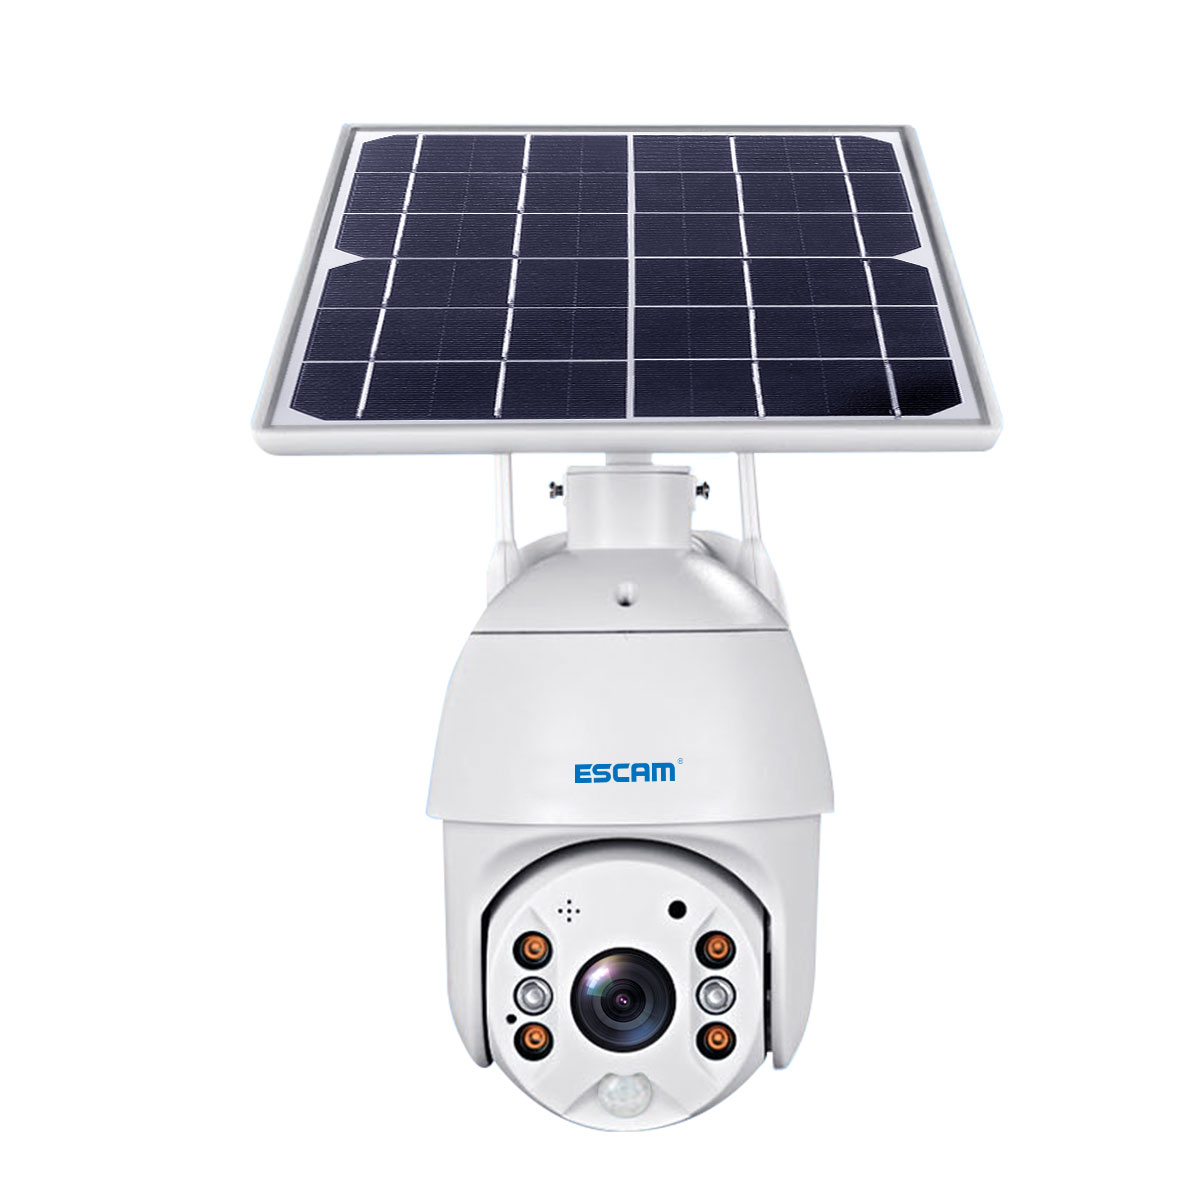 cheapest Solar Panel Solar Siren SJ1 for G19 G18 W18 8218G W1 GSM Alarm System Security with Flashing Response Sound Waterproof Outdoor